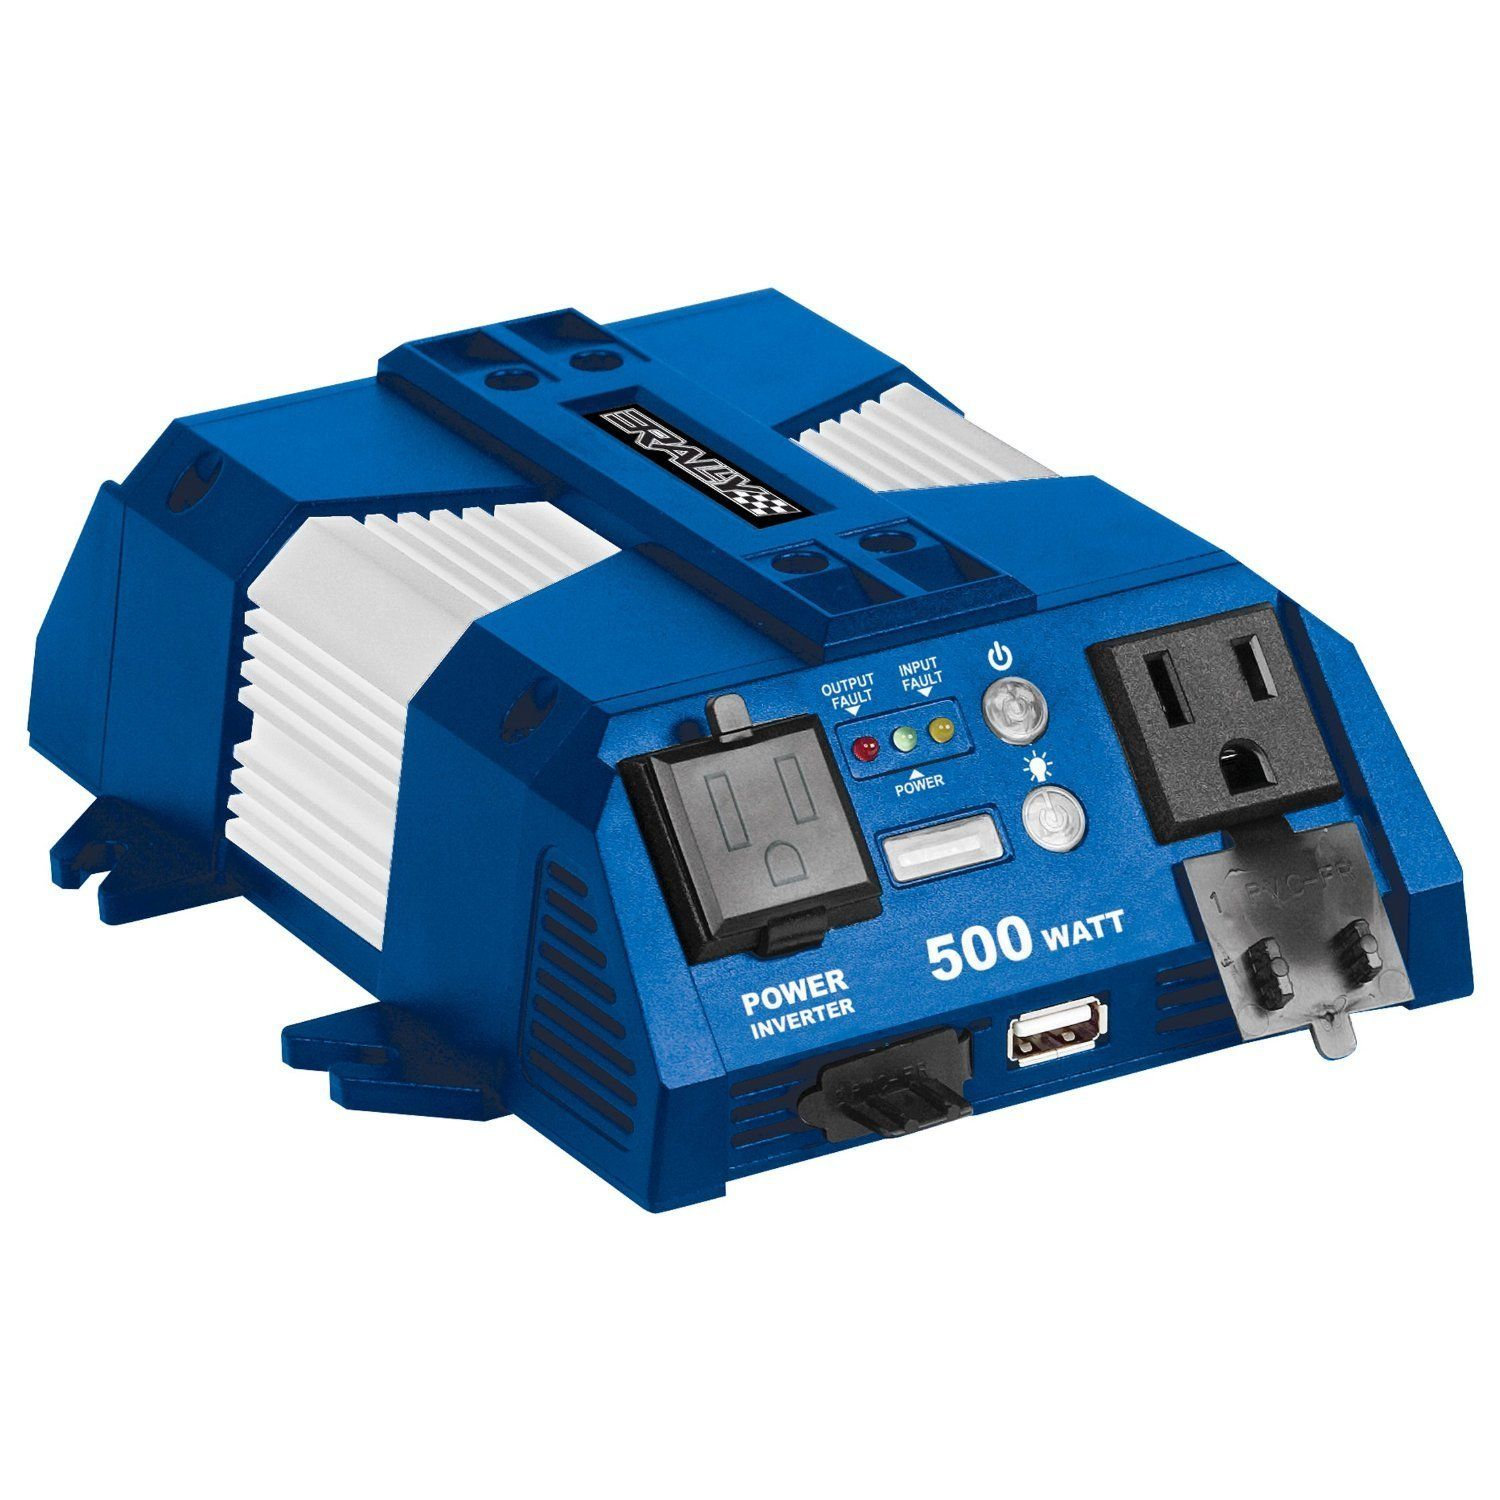 Rally Marine Grade 500W Power Inverter with USB Charging